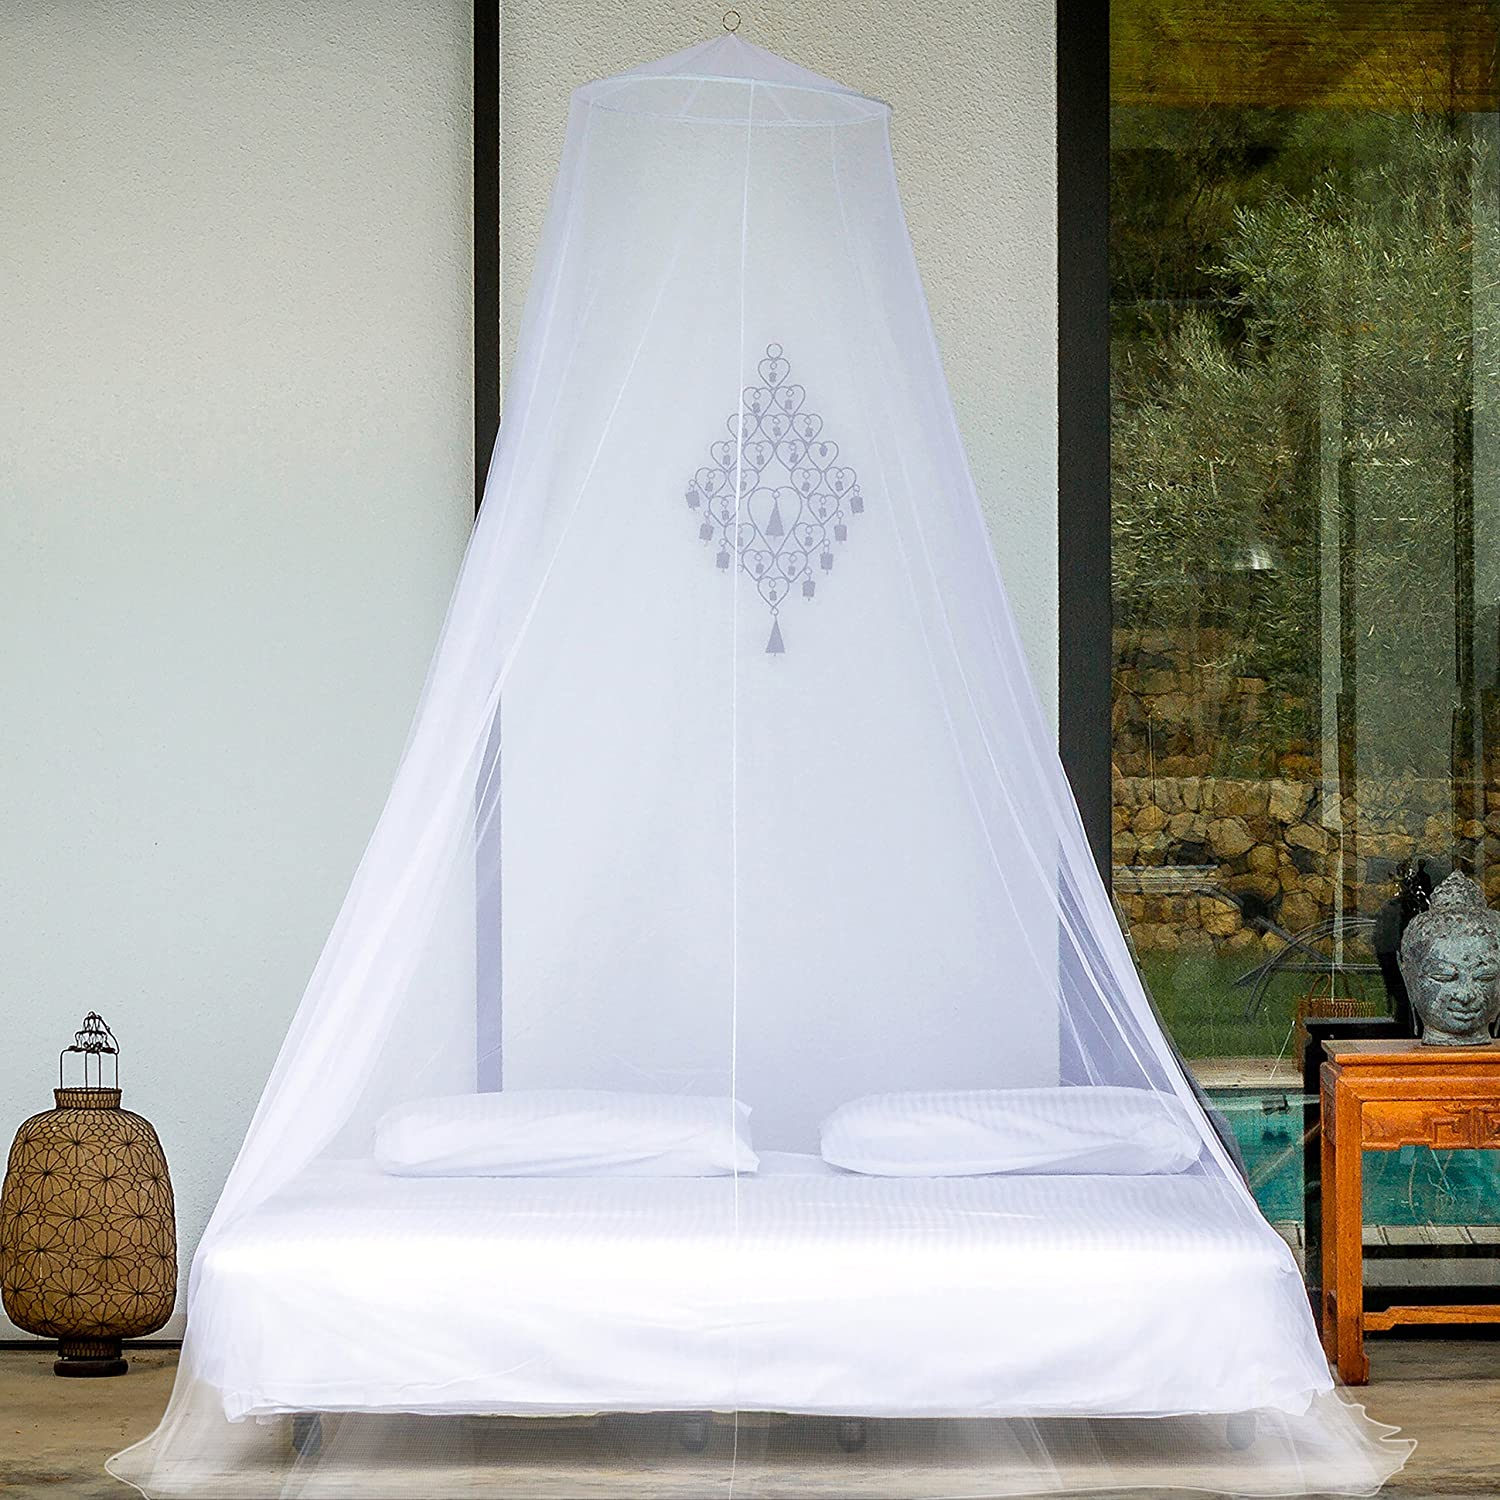 Awesome PREMIUM MOSQUITO NET For Twin, Queen And King Size Bed, Large Mosquito  Netting Curtains, Canopy For Bed, Round Insect Fly Screen, Insect  Protection ...